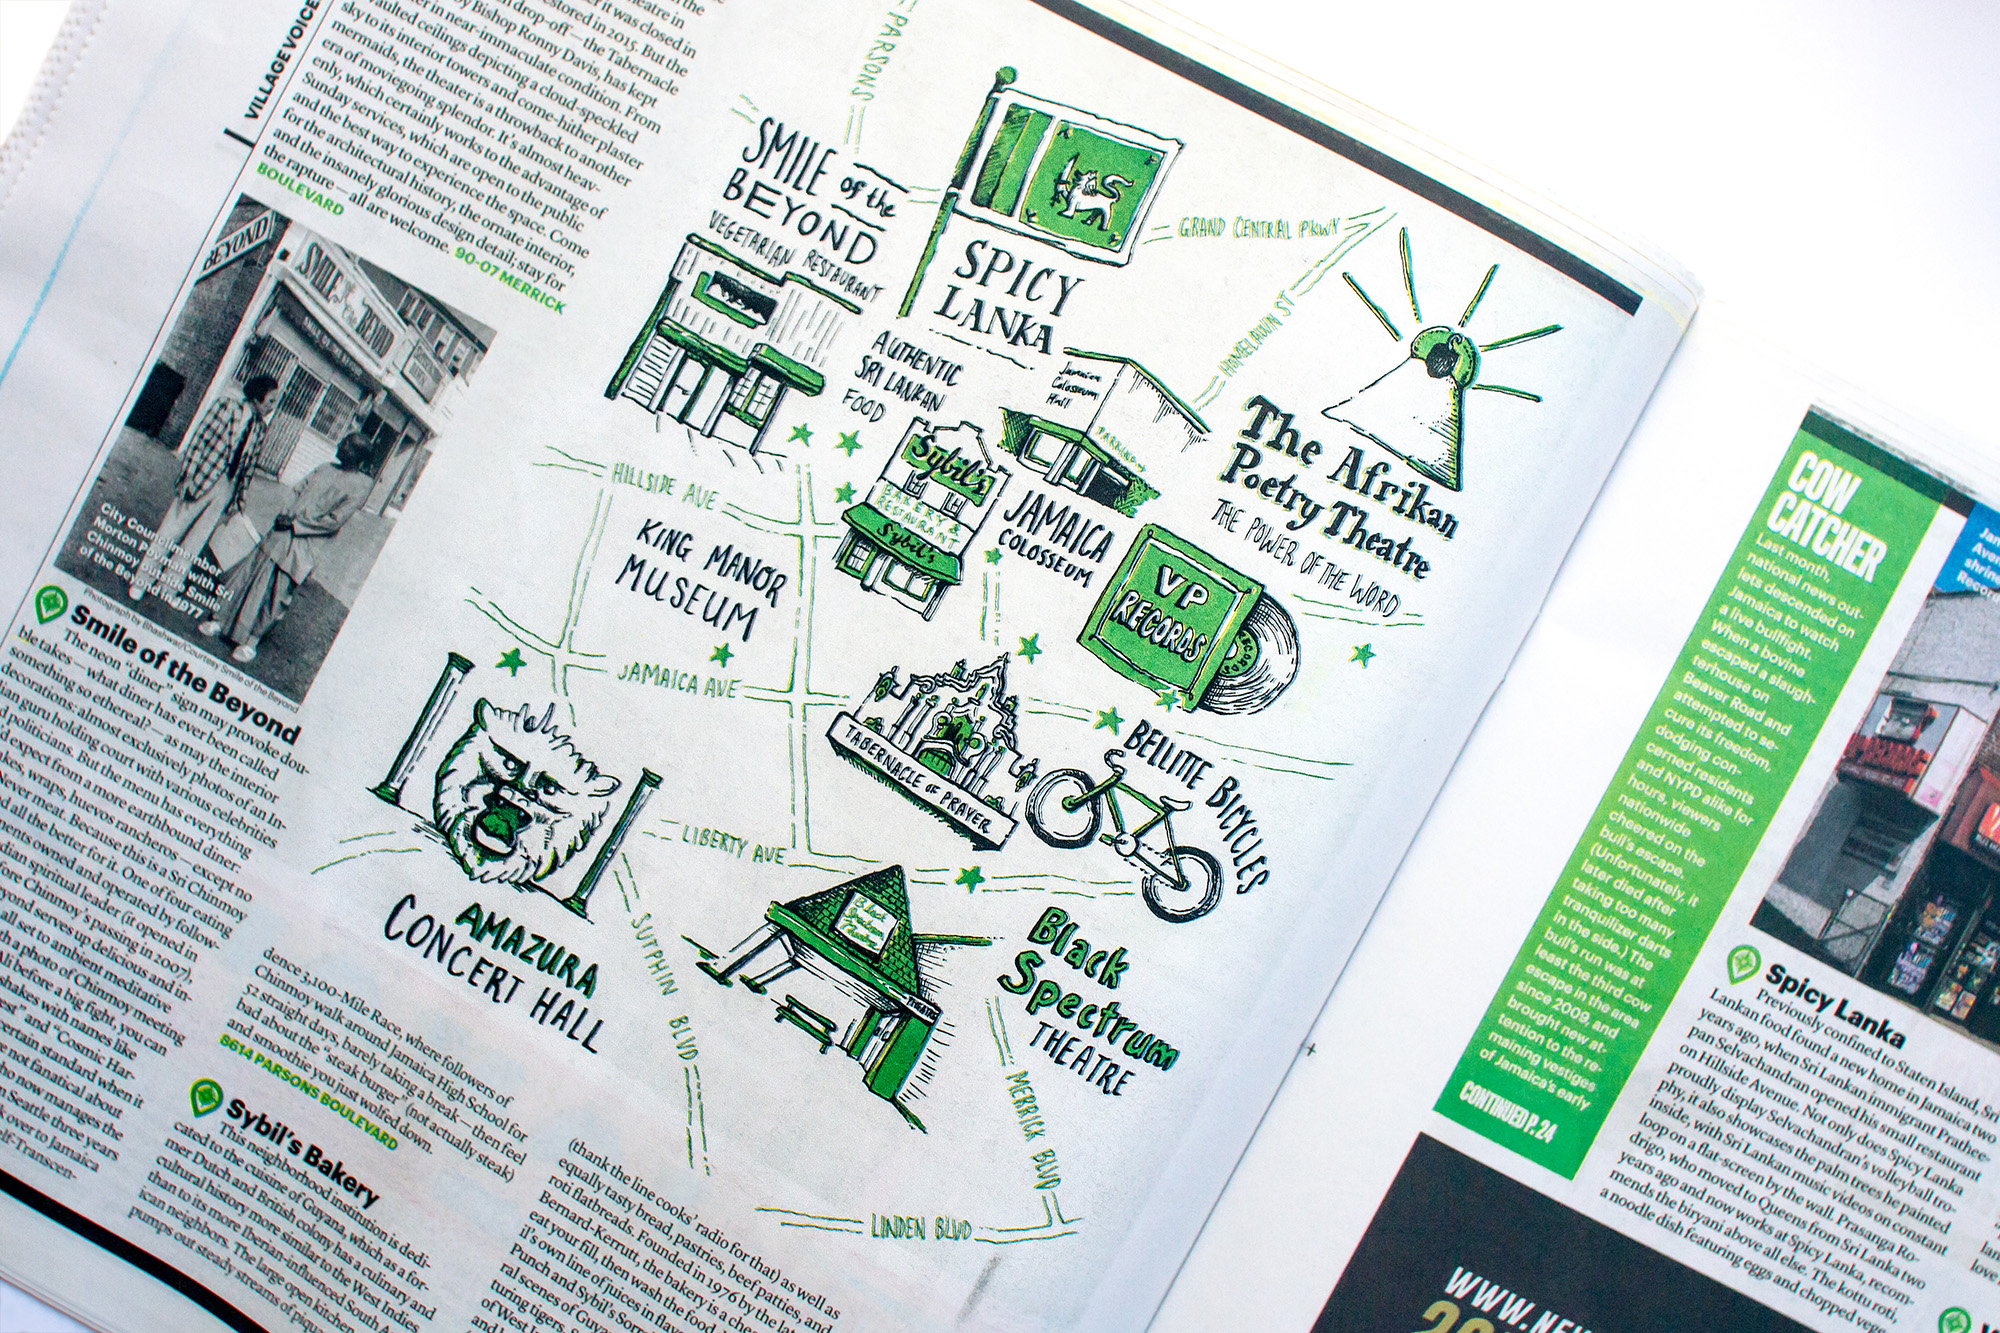 Hand lettering and pen and ink drawn illustrated map of Jamaica neighborhood in New York City, editorial art for the Village Voice. Shows Smile of the Beyond, Spicy Lanka, The Afrikan Poetry Theatre, Black Spectrum, Bicycles, Amazura Concert Hall.